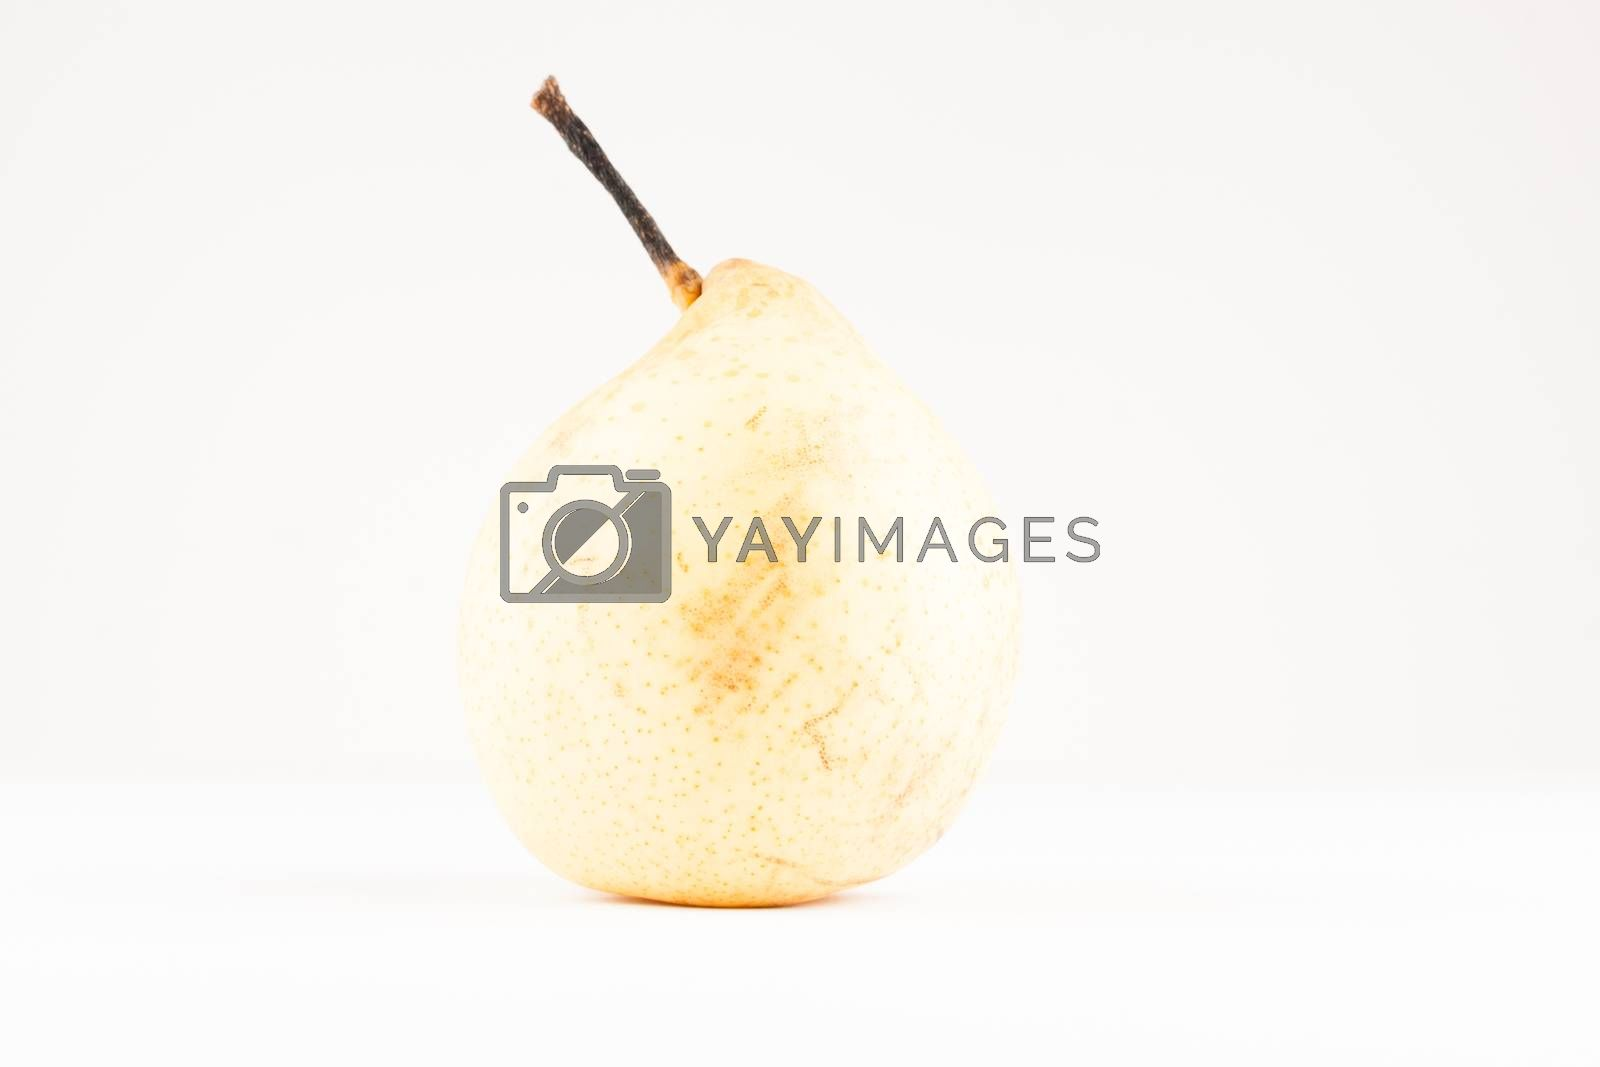 Royalty free image of pear by furo_felix